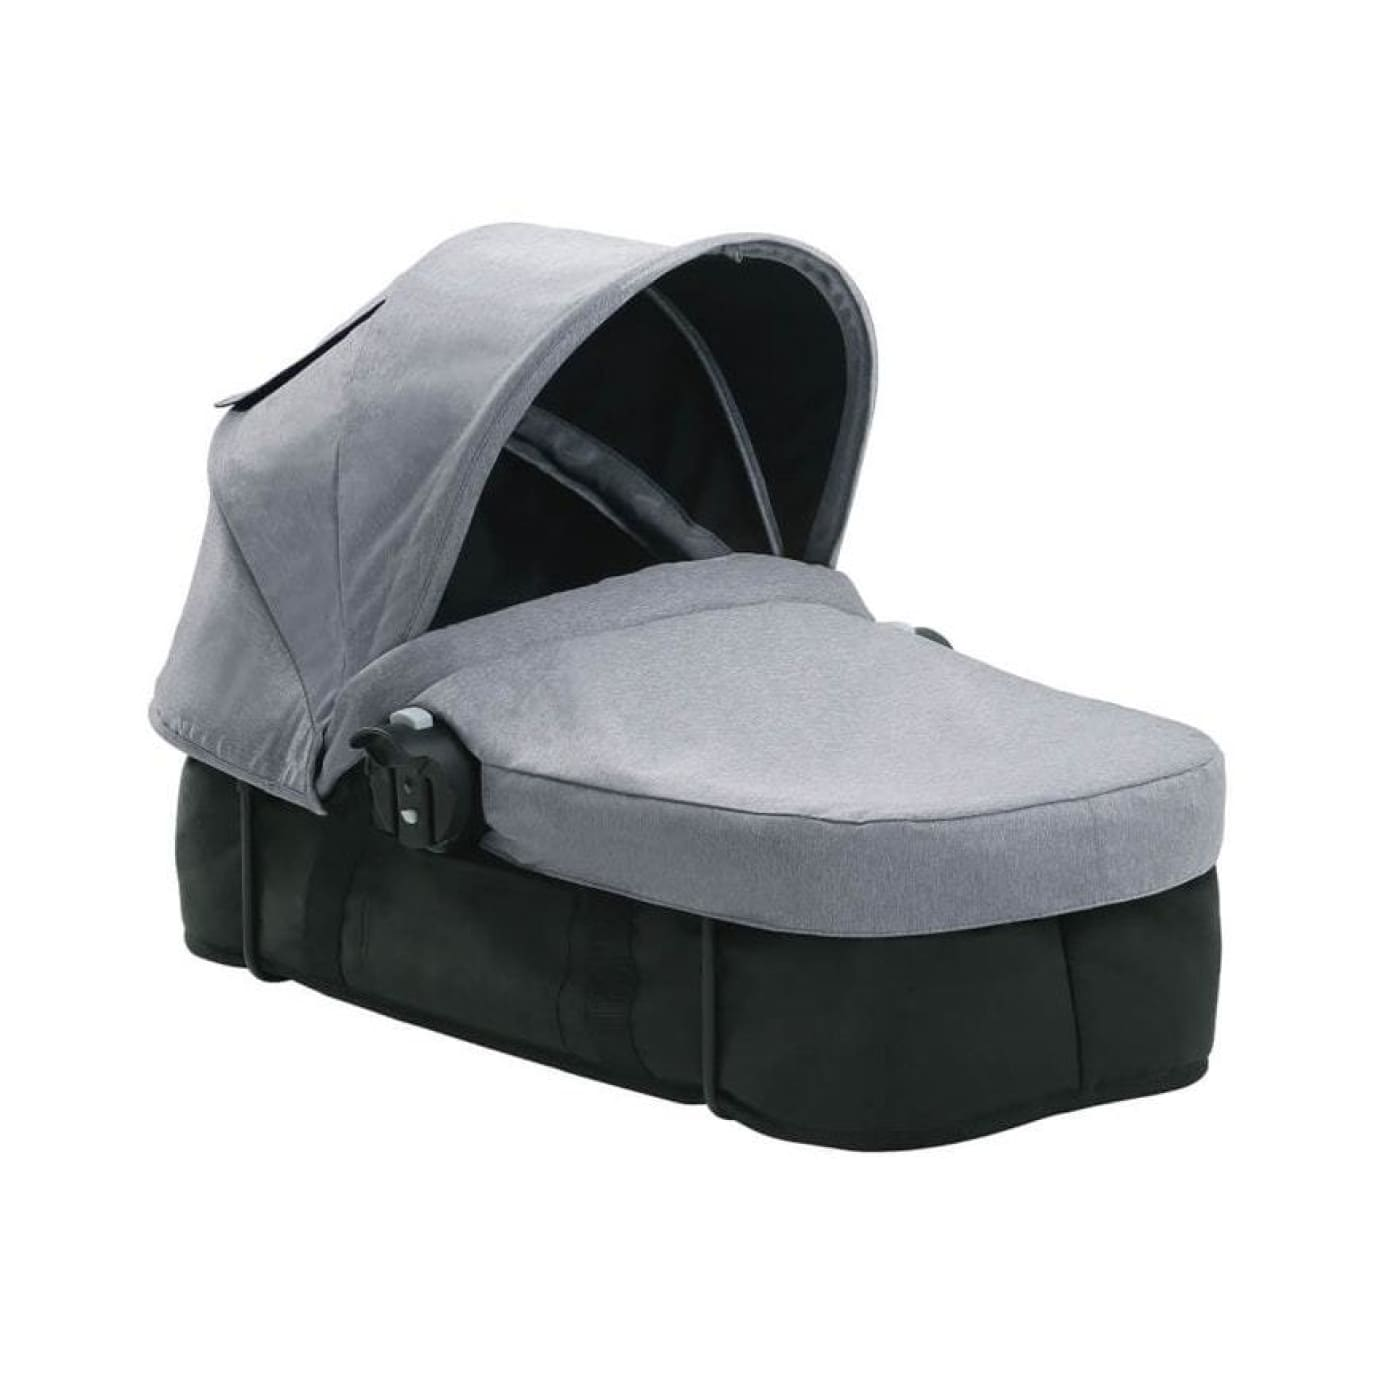 Baby Jogger City Select 2019 Bassinet Kit - Slate - PRAMS & STROLLERS - BASS/CARRY COTS/STANDS